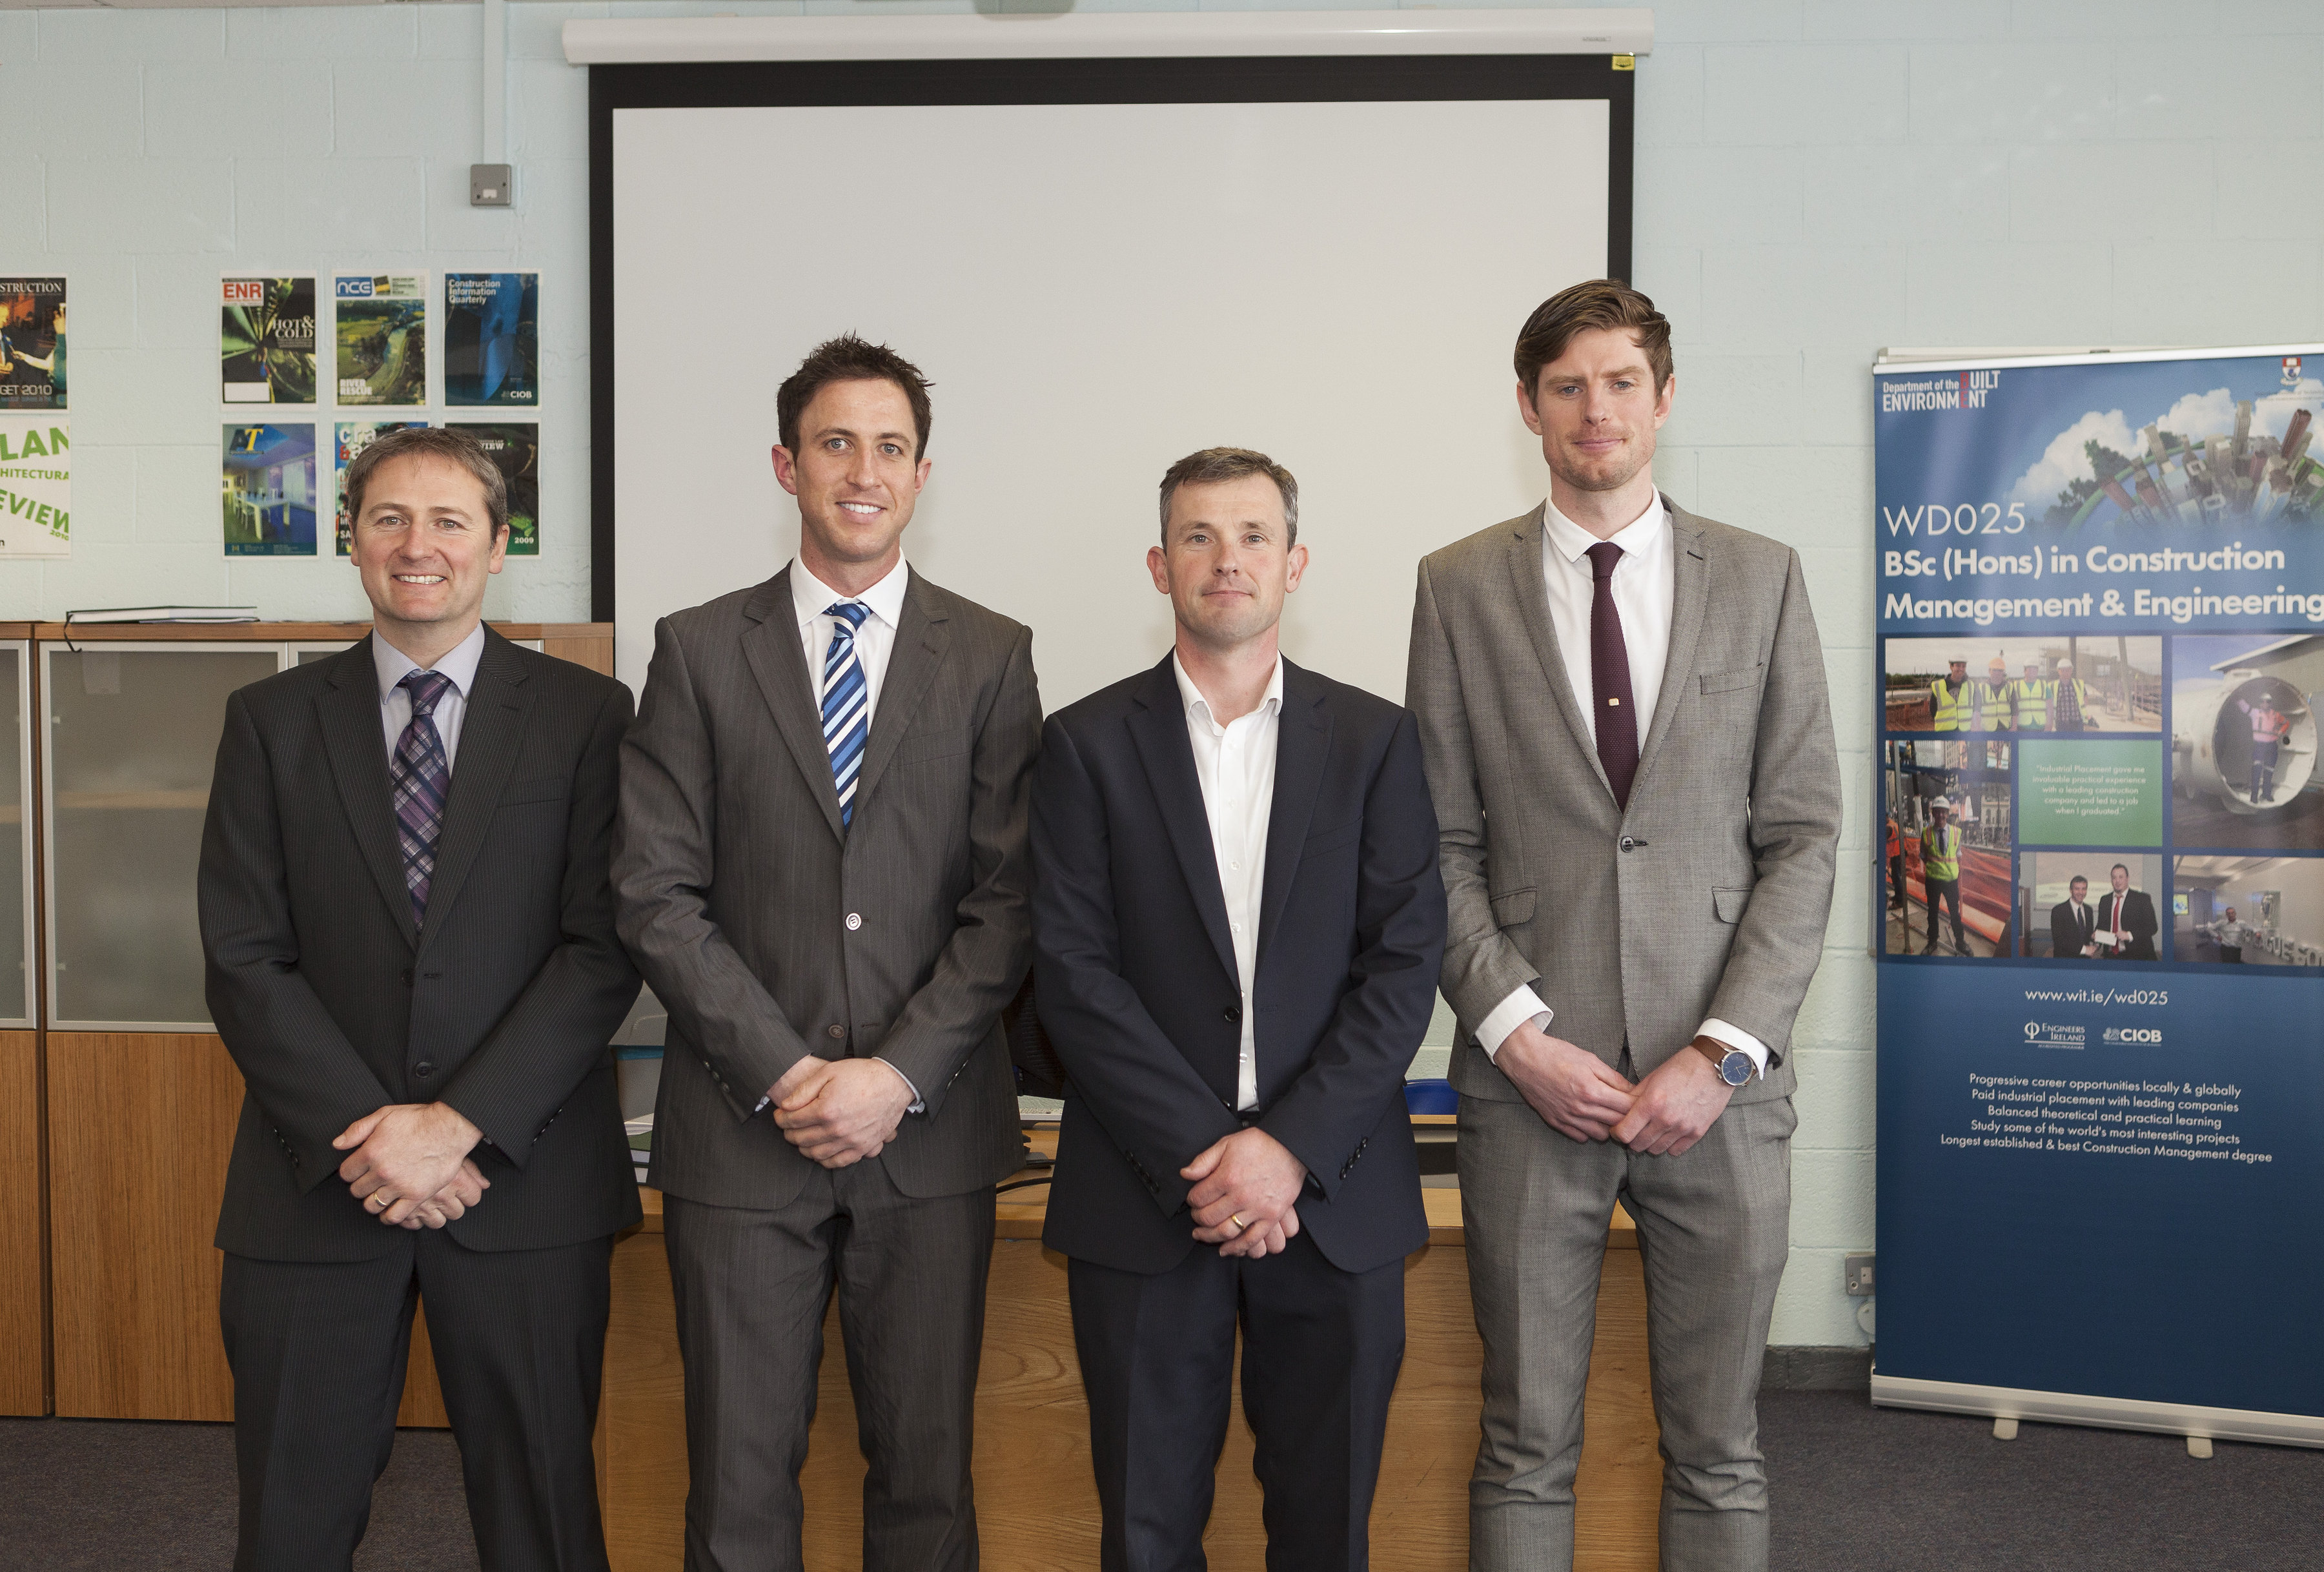 Pictured at the presentation of the 2016 Sisk Award in WIT are (left to right): David Phelan, Lorcan Hickey, Declan Gahan of Sisk and Brook Cameron